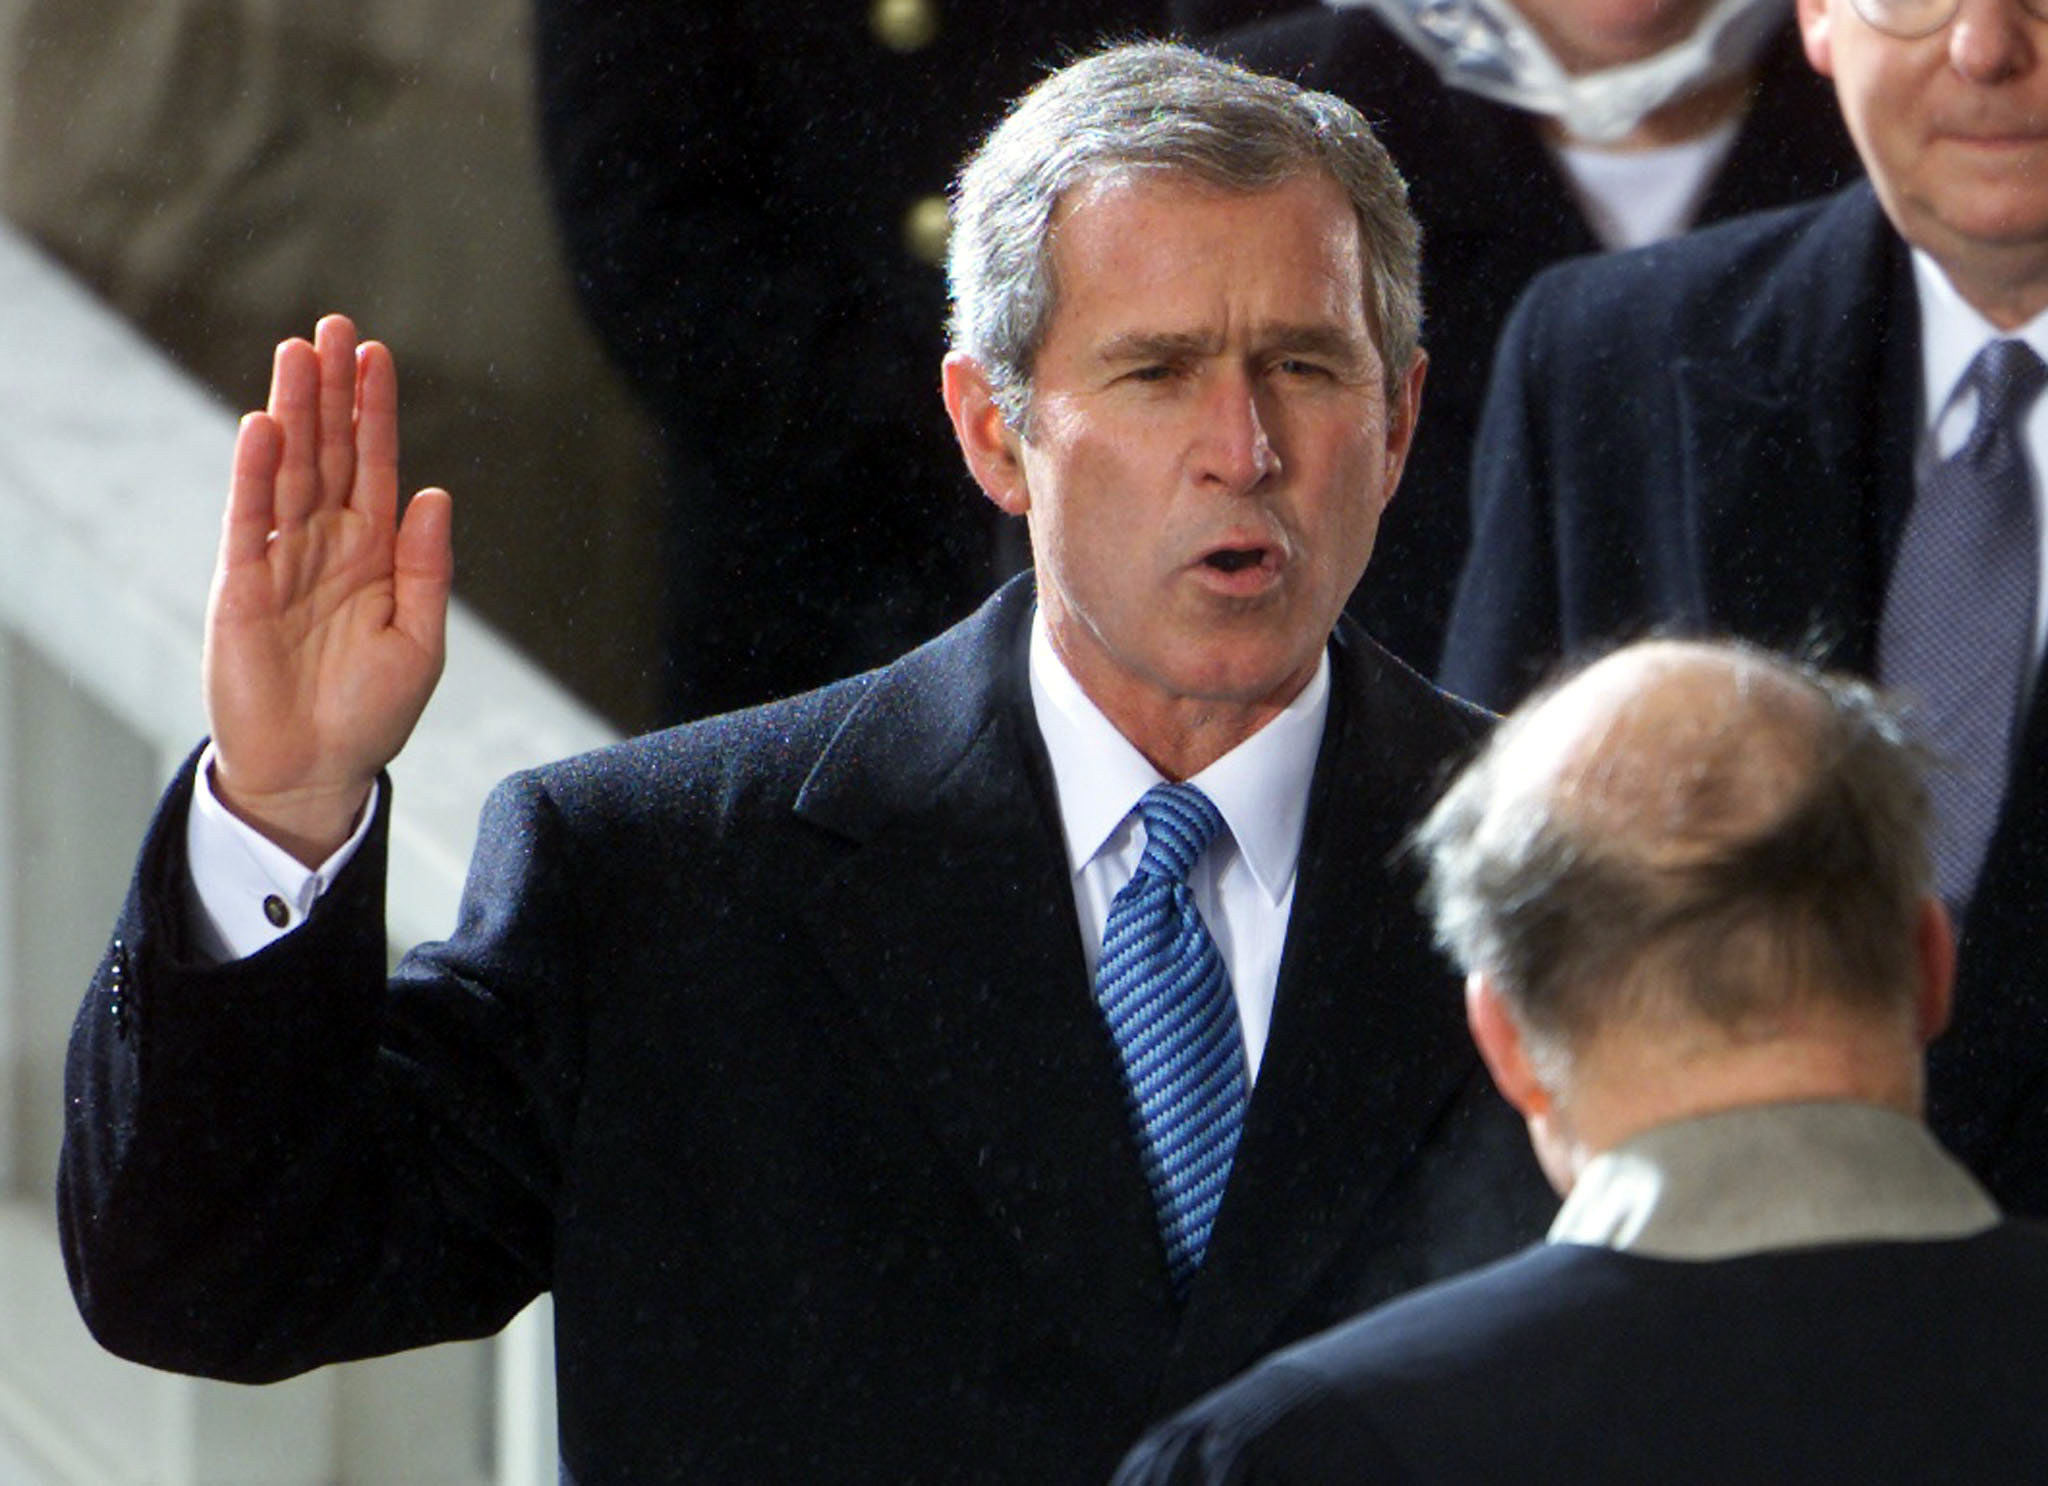 an outline of the presidential inauguration of george w bush in 2001 Englisch-klausur: george w bush, extract from his inaugural speech delivered 2001 - summary of the speech in no more than 150 words - explanation of the used.